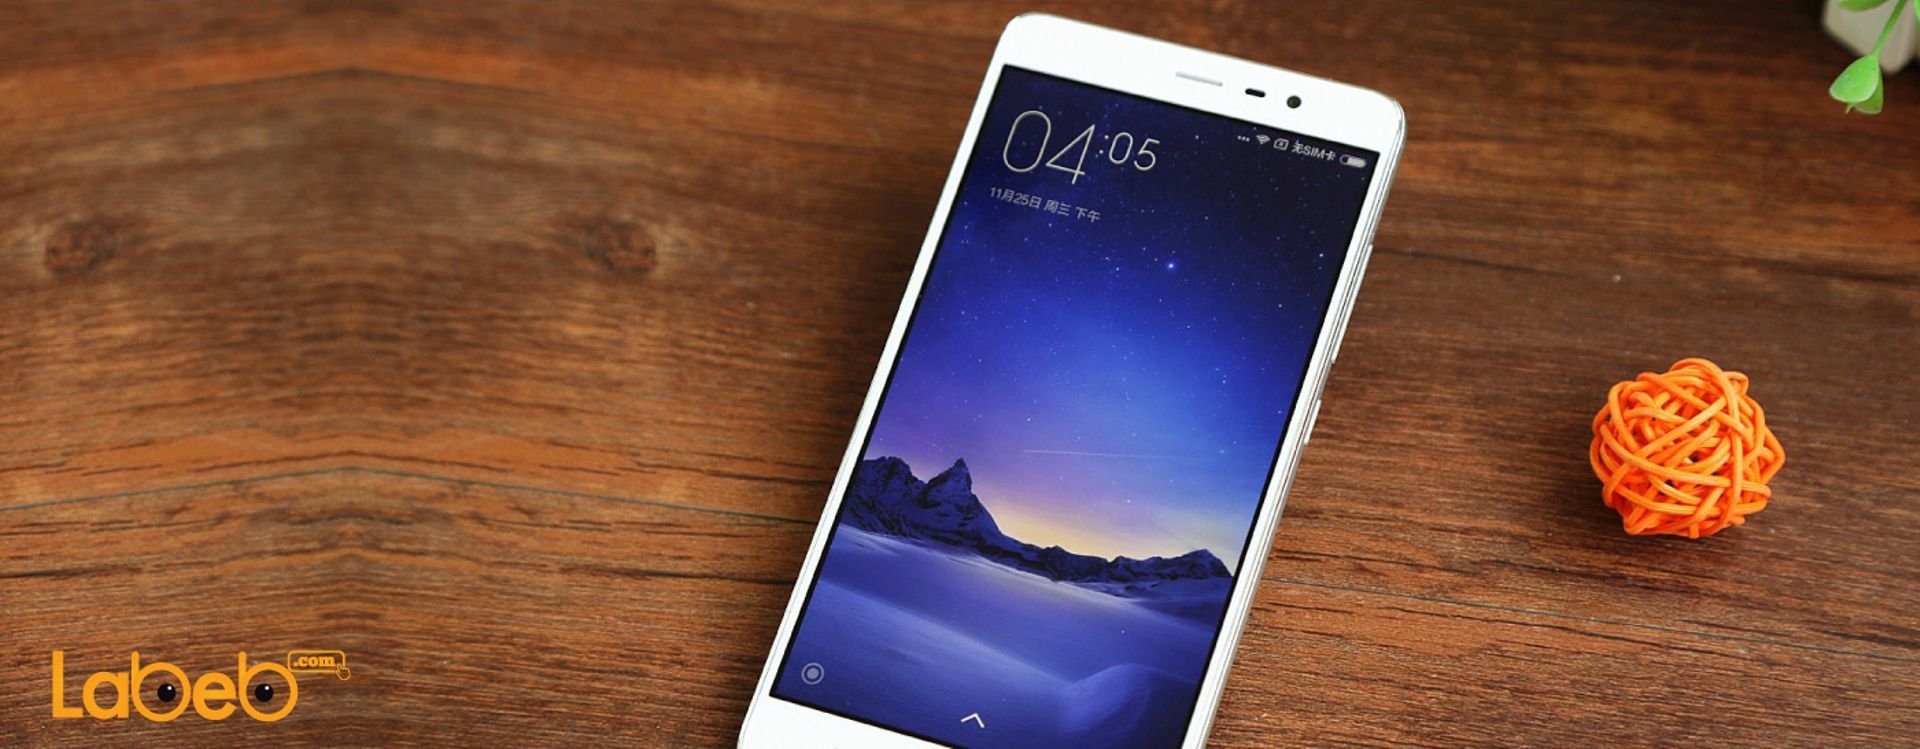 Tech Experts Believe that Xiaomi Redmi Note 3 is Similar to Apple's iPhone 6+ and Samsung's Galaxy Note 4